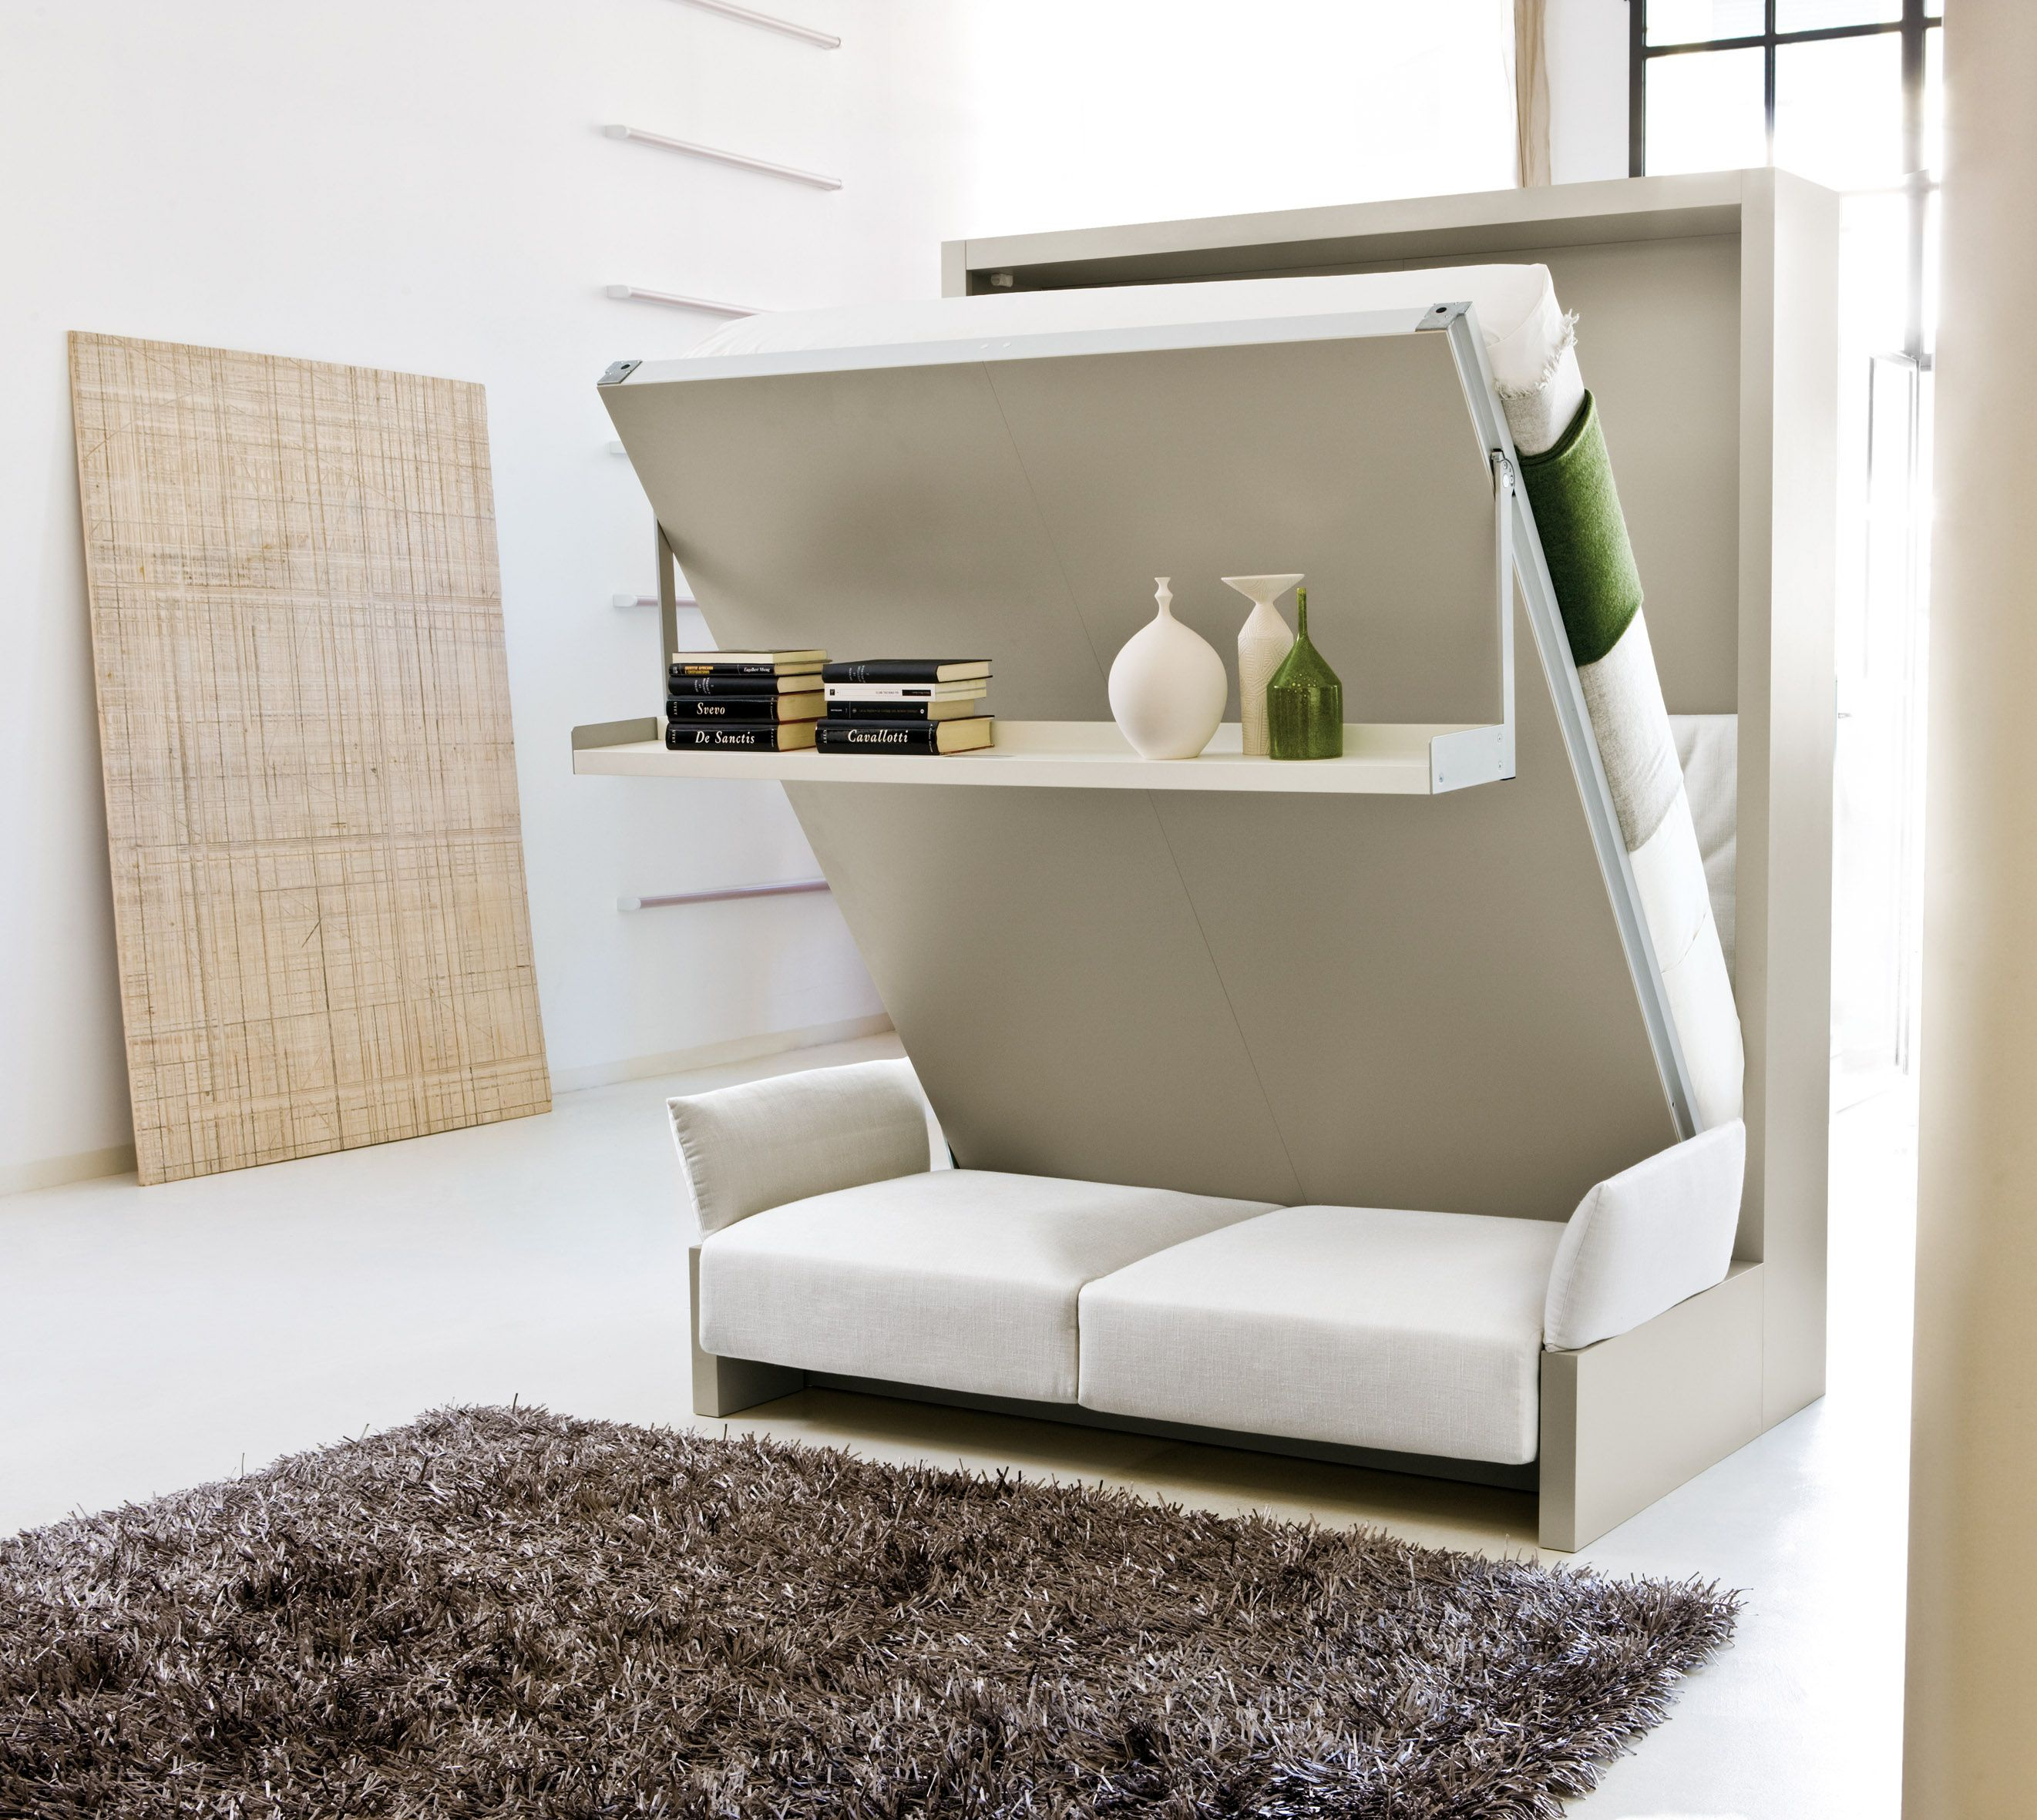 Wonderful Space Saving Beds Design for Small Bedroom with Grey Carpet Rug and White Tile Flooring